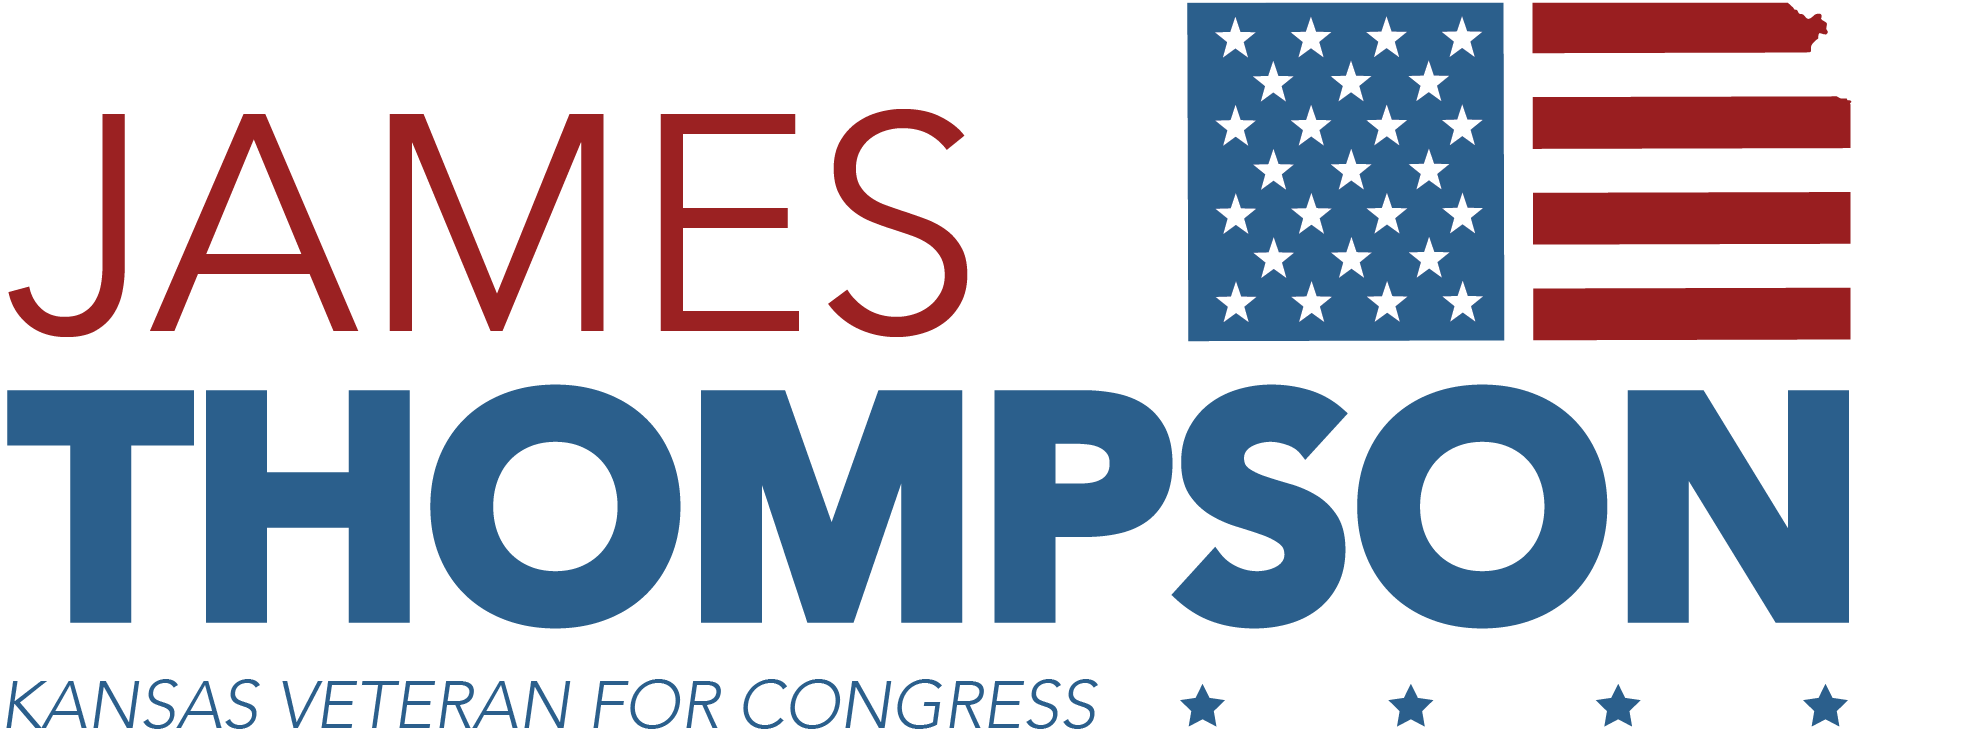 Jamesthompsonforcongresslogo